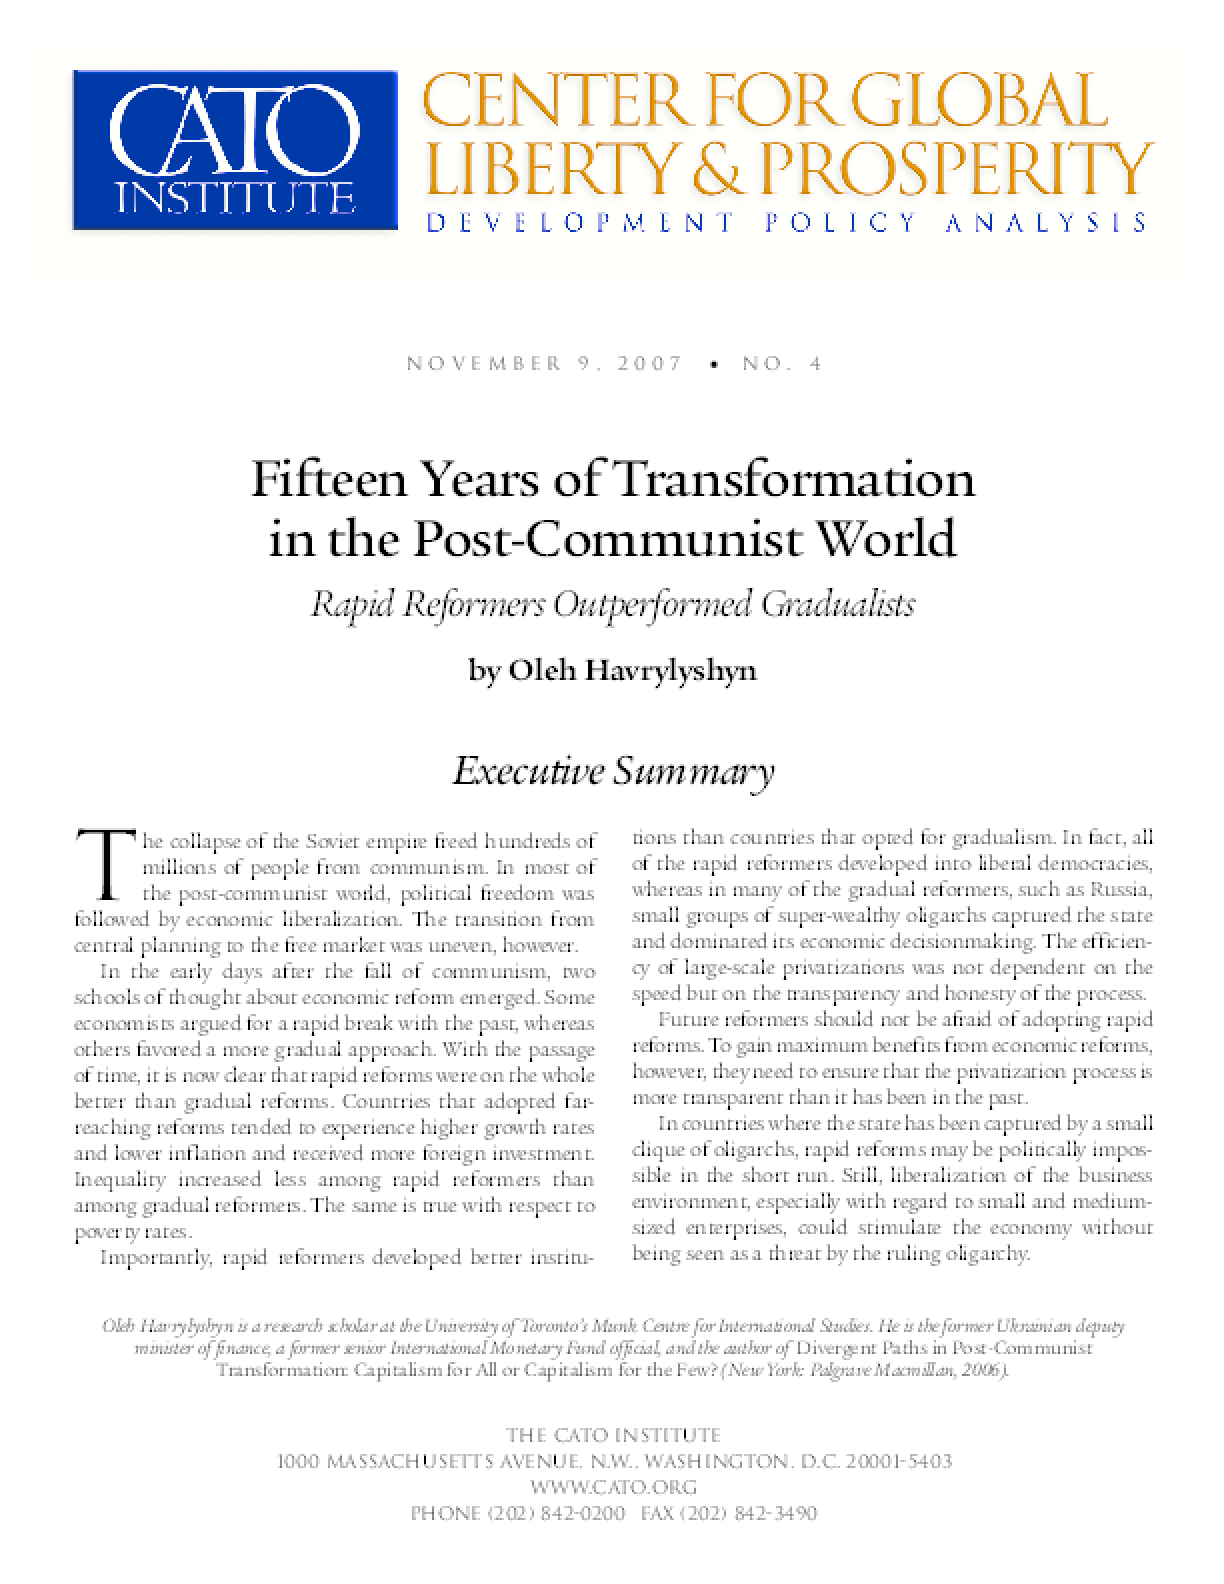 Fifteen Years of Transformation in the Post-Communist World